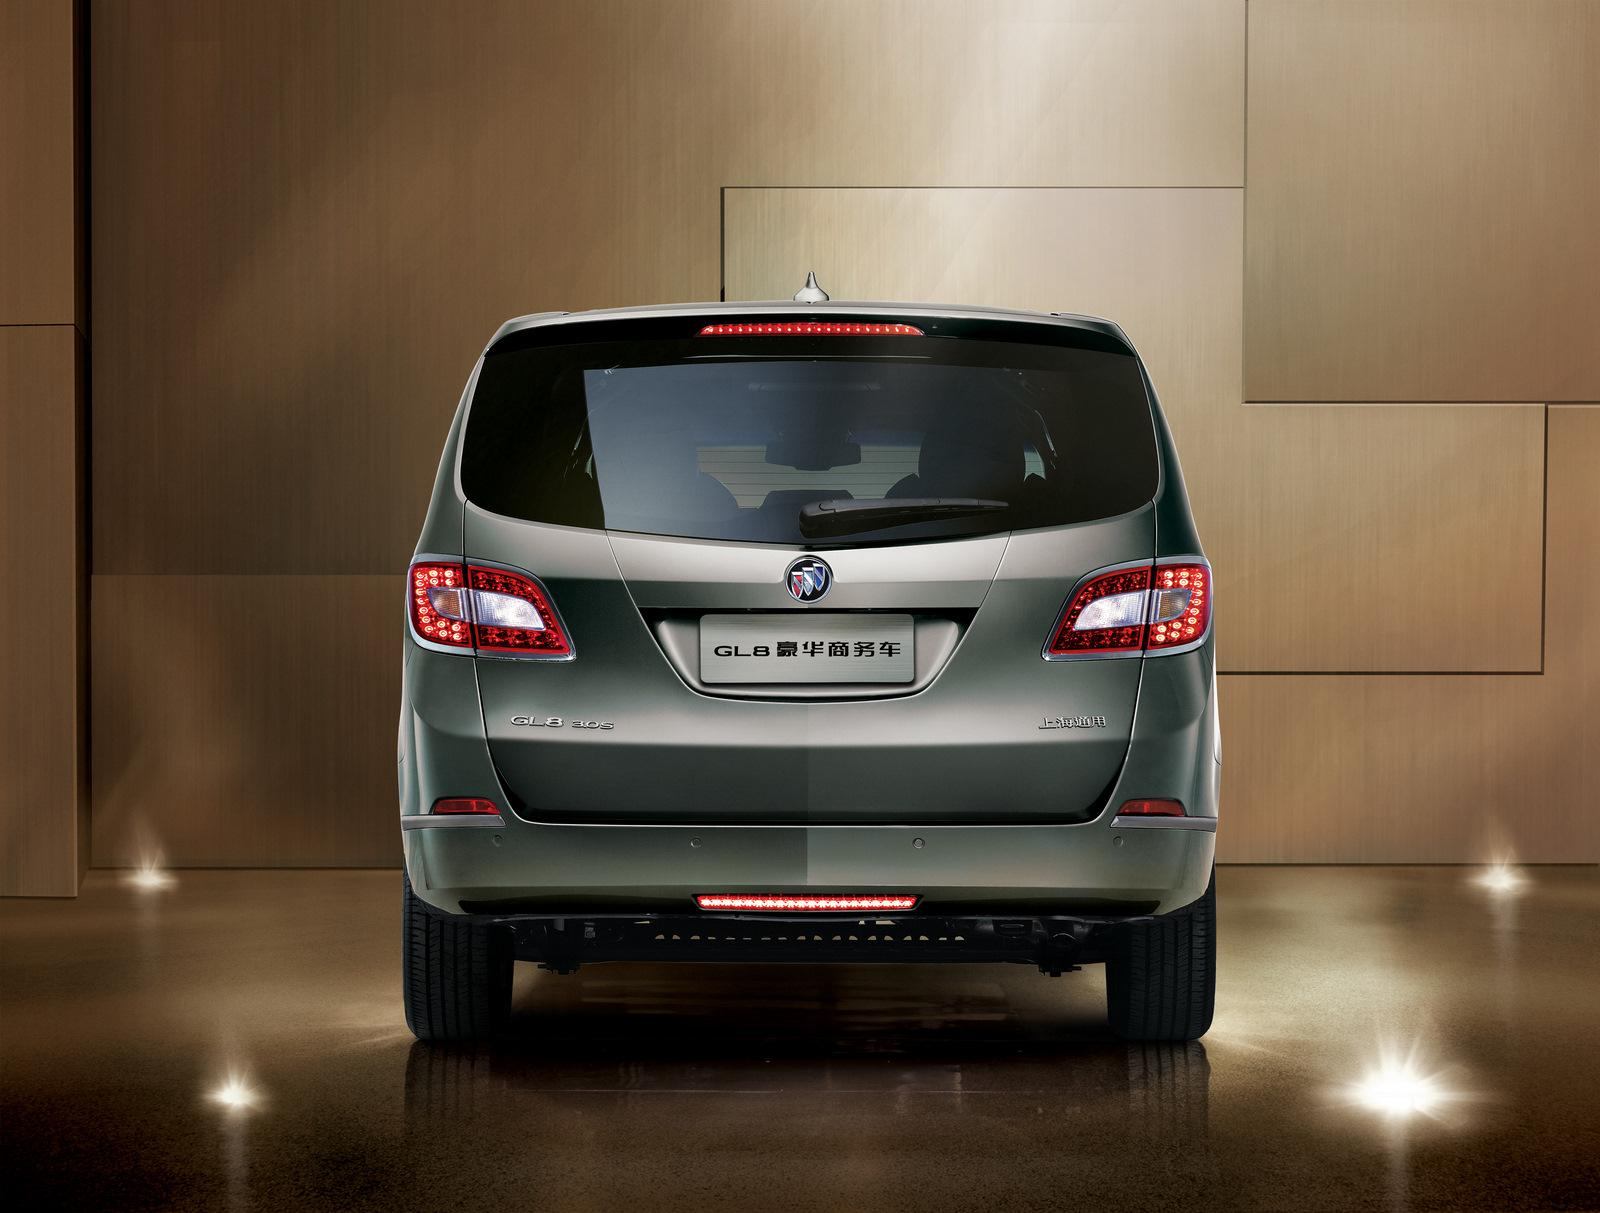 2011 Buick GL8 will hit the Chinese market in January